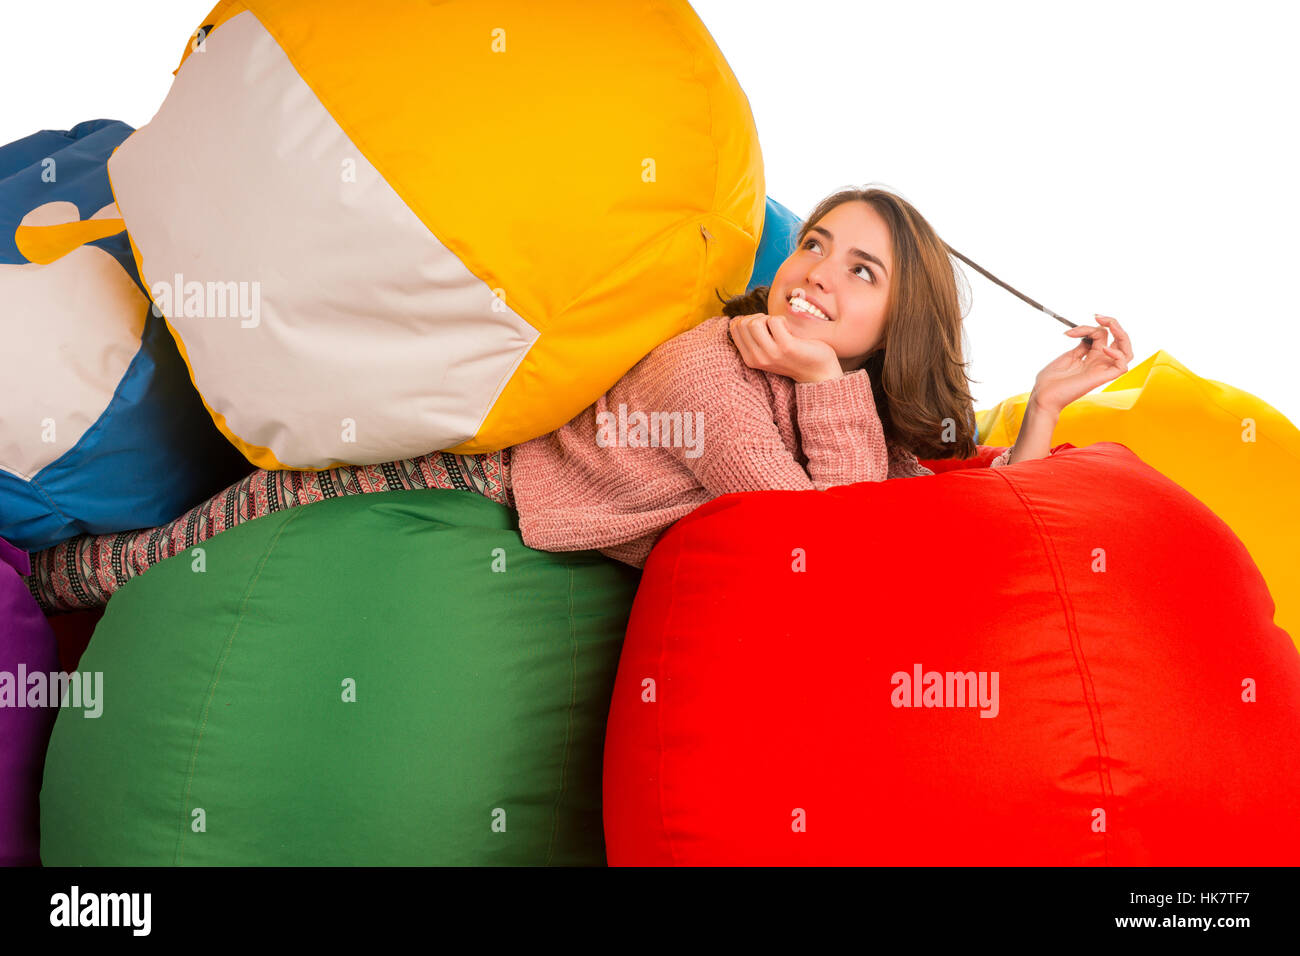 Young dreaming woman lying between beanbag chairs isolated on white background - Stock Image